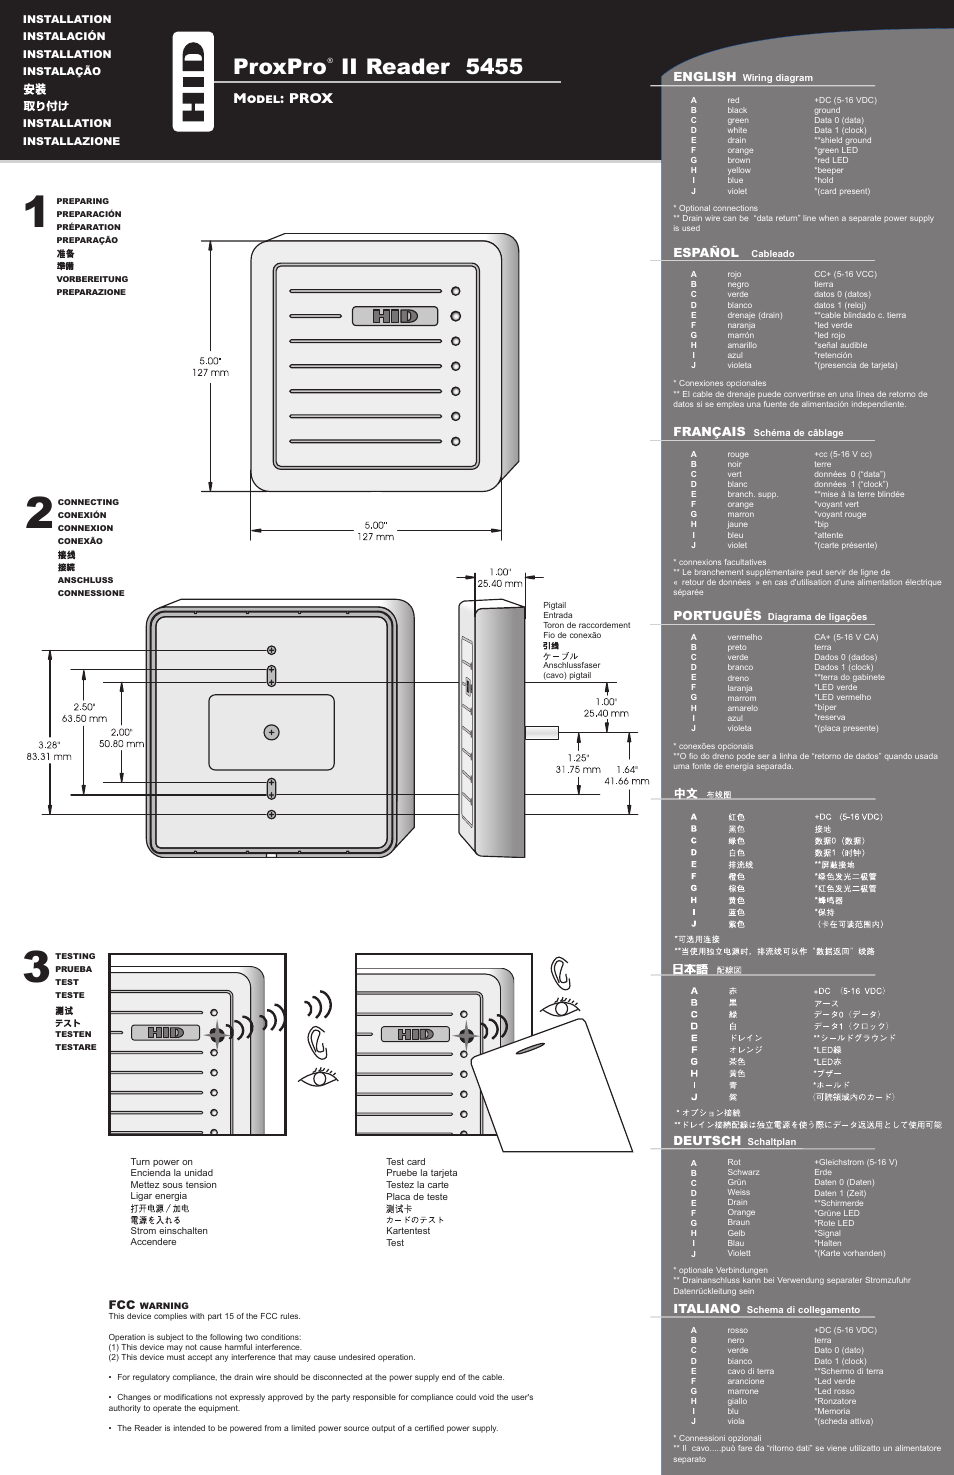 hid proxpro ii installation guide page1?resize=665%2C1028 sophisticated usb 2 0 male to male wiring diagram gallery wiring usb male to male wiring diagram at eliteediting.co